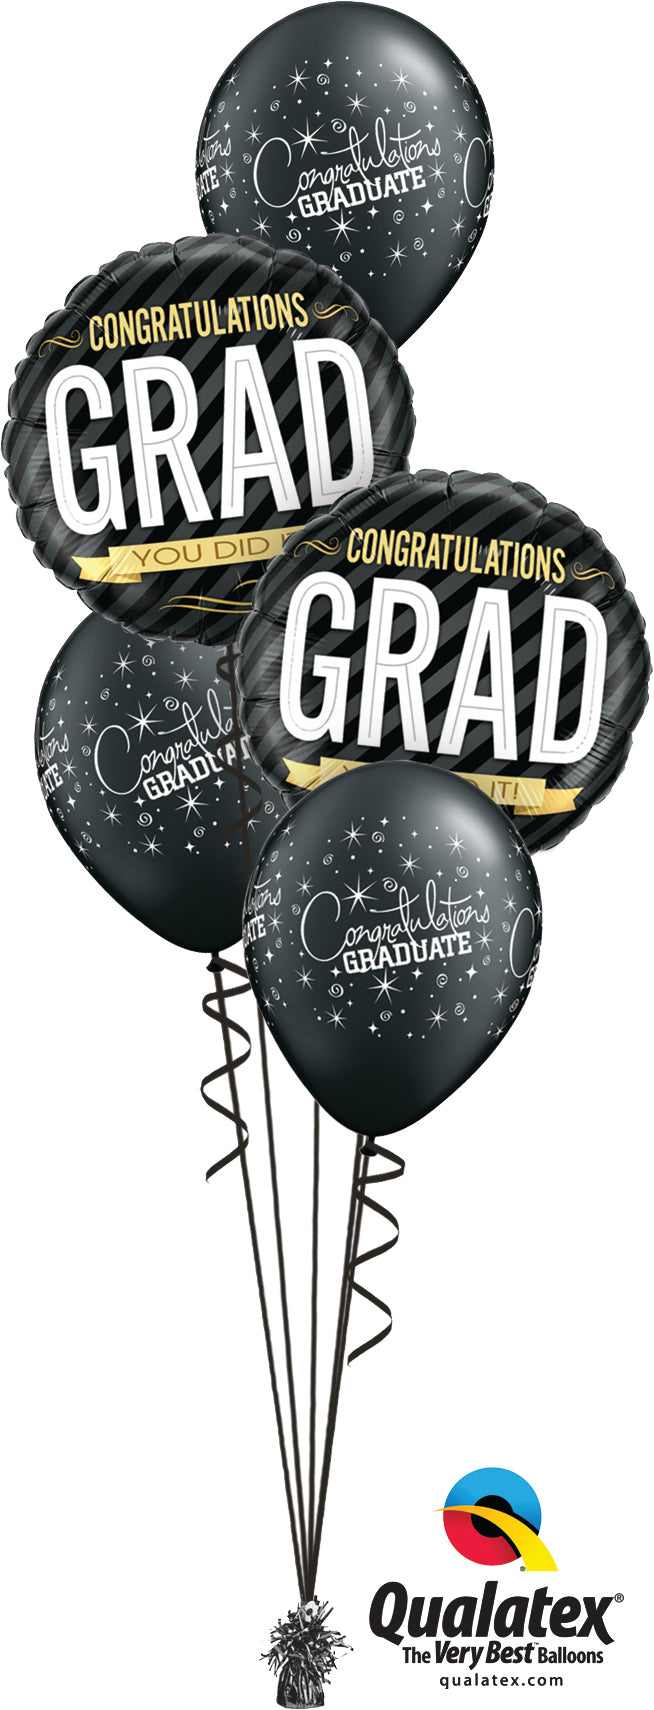 You go Grad! - Balloon Express